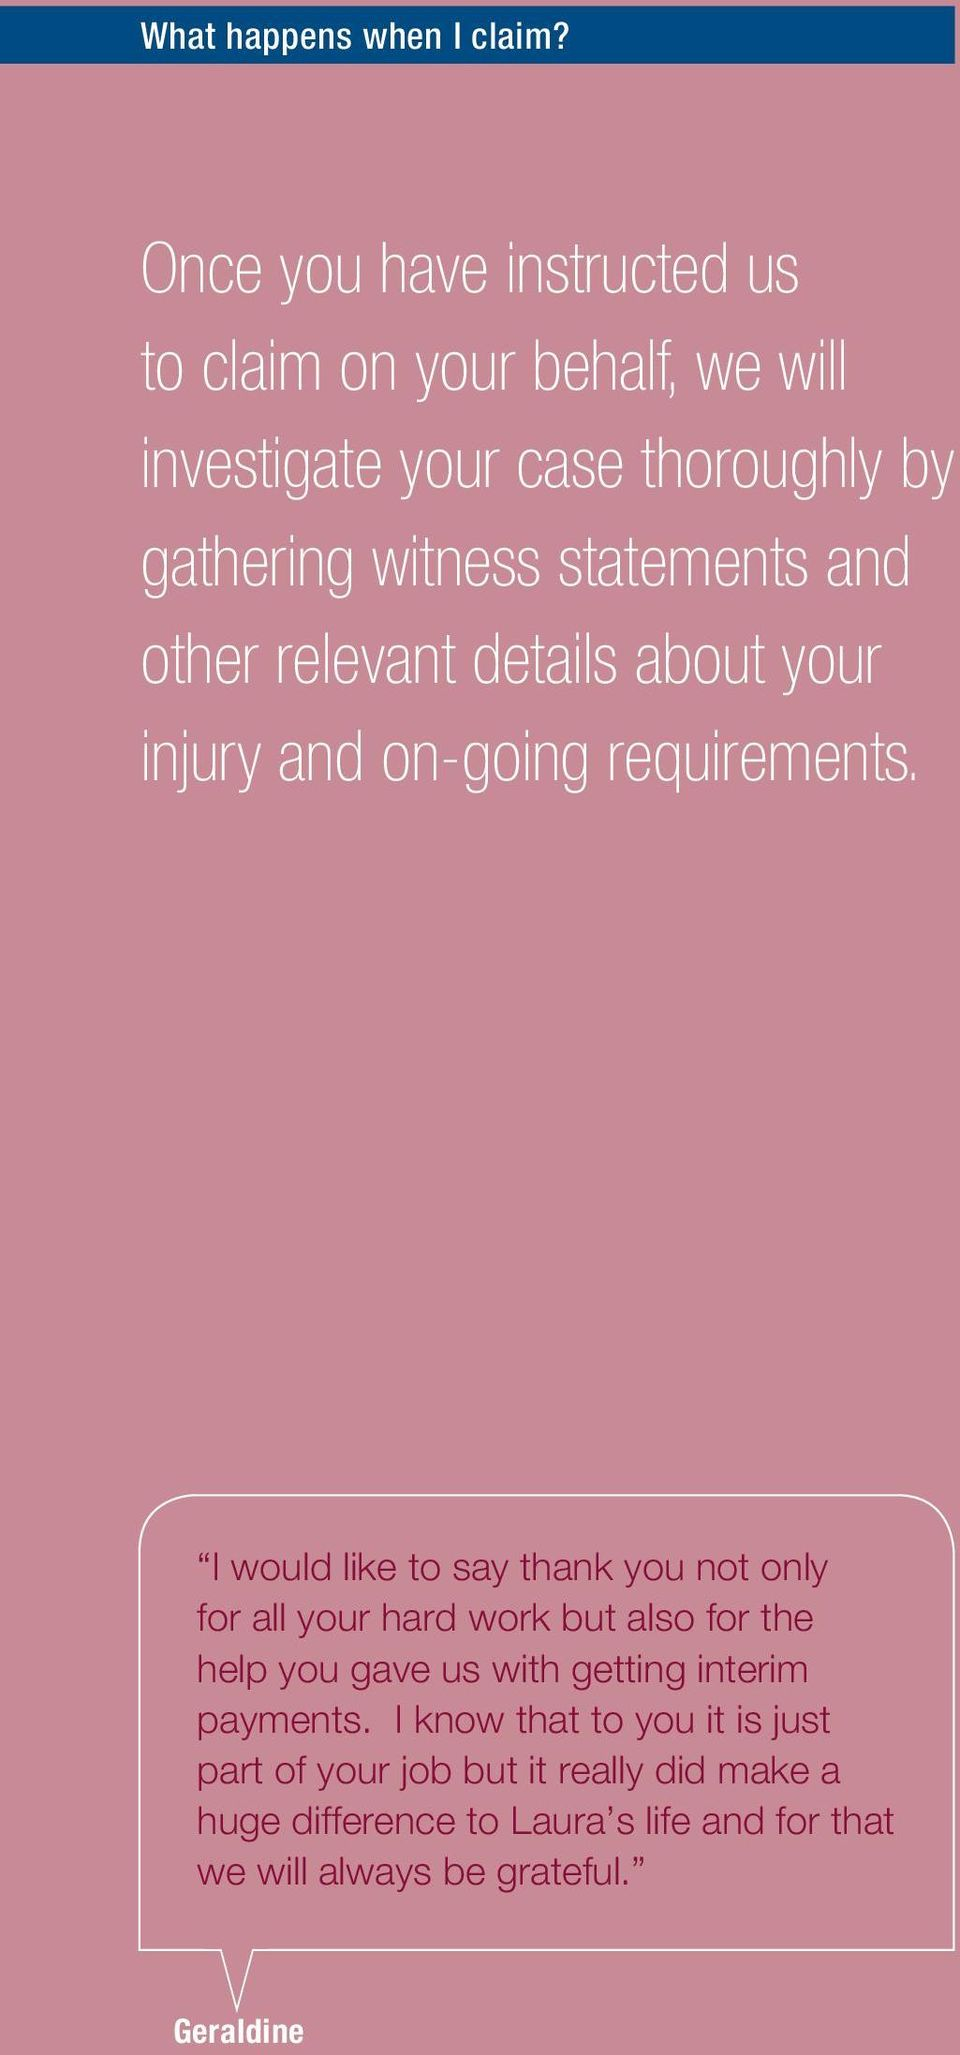 and other relevant details about your injury and on-going requirements.